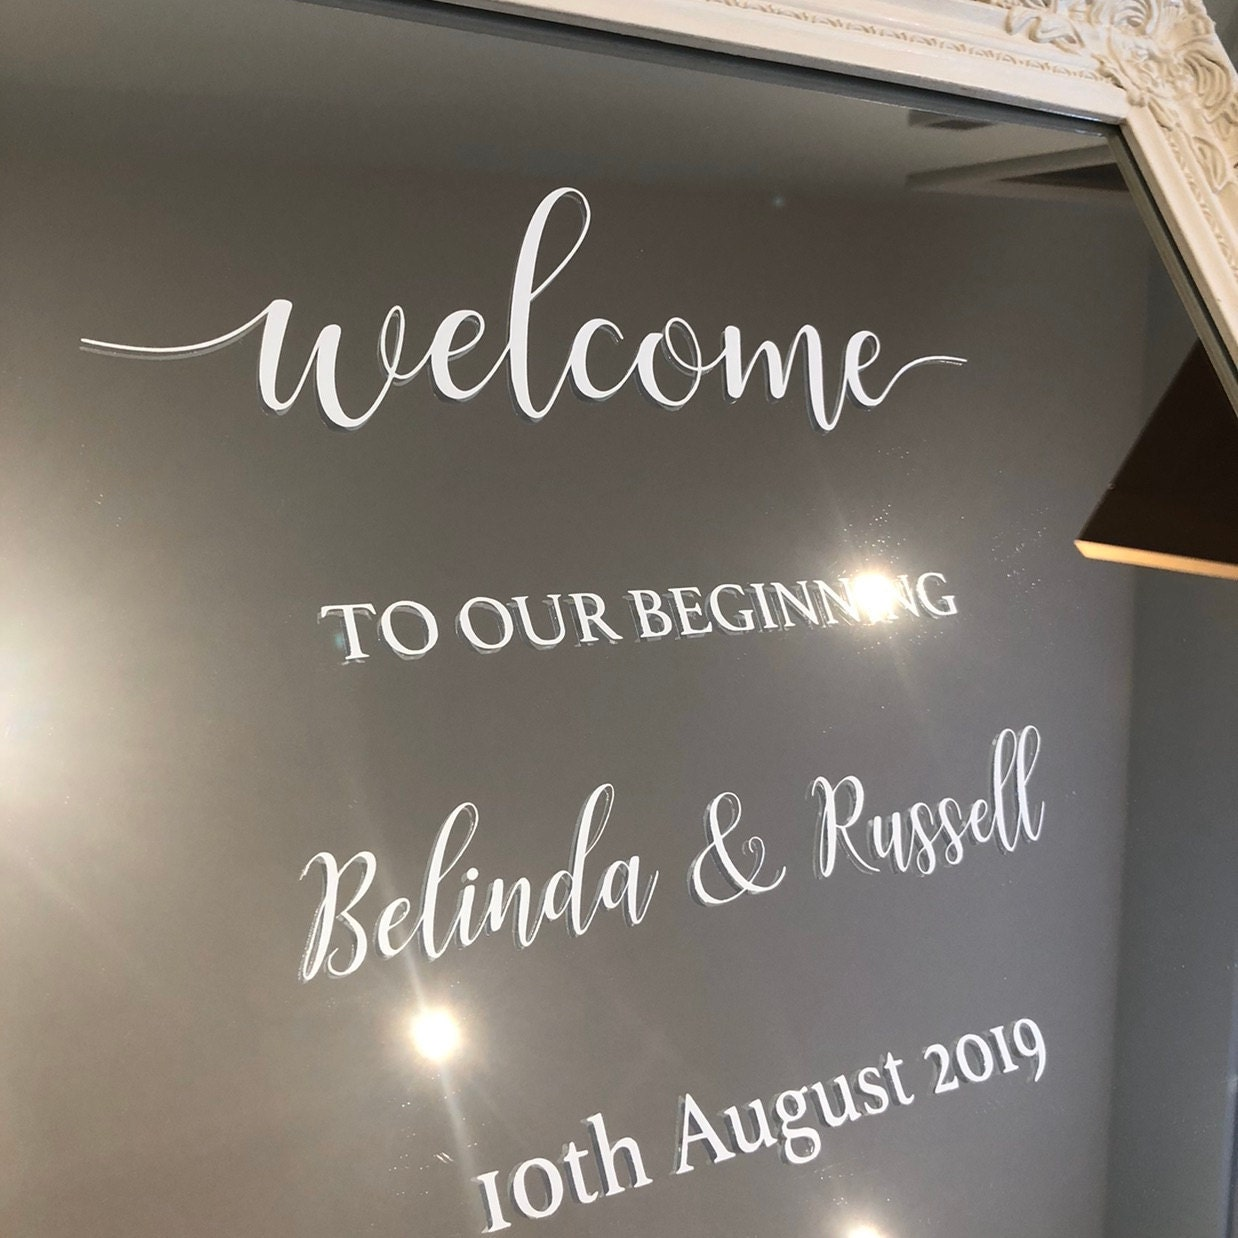 Angelic Designs Wedding Stationery added a photo of their purchase